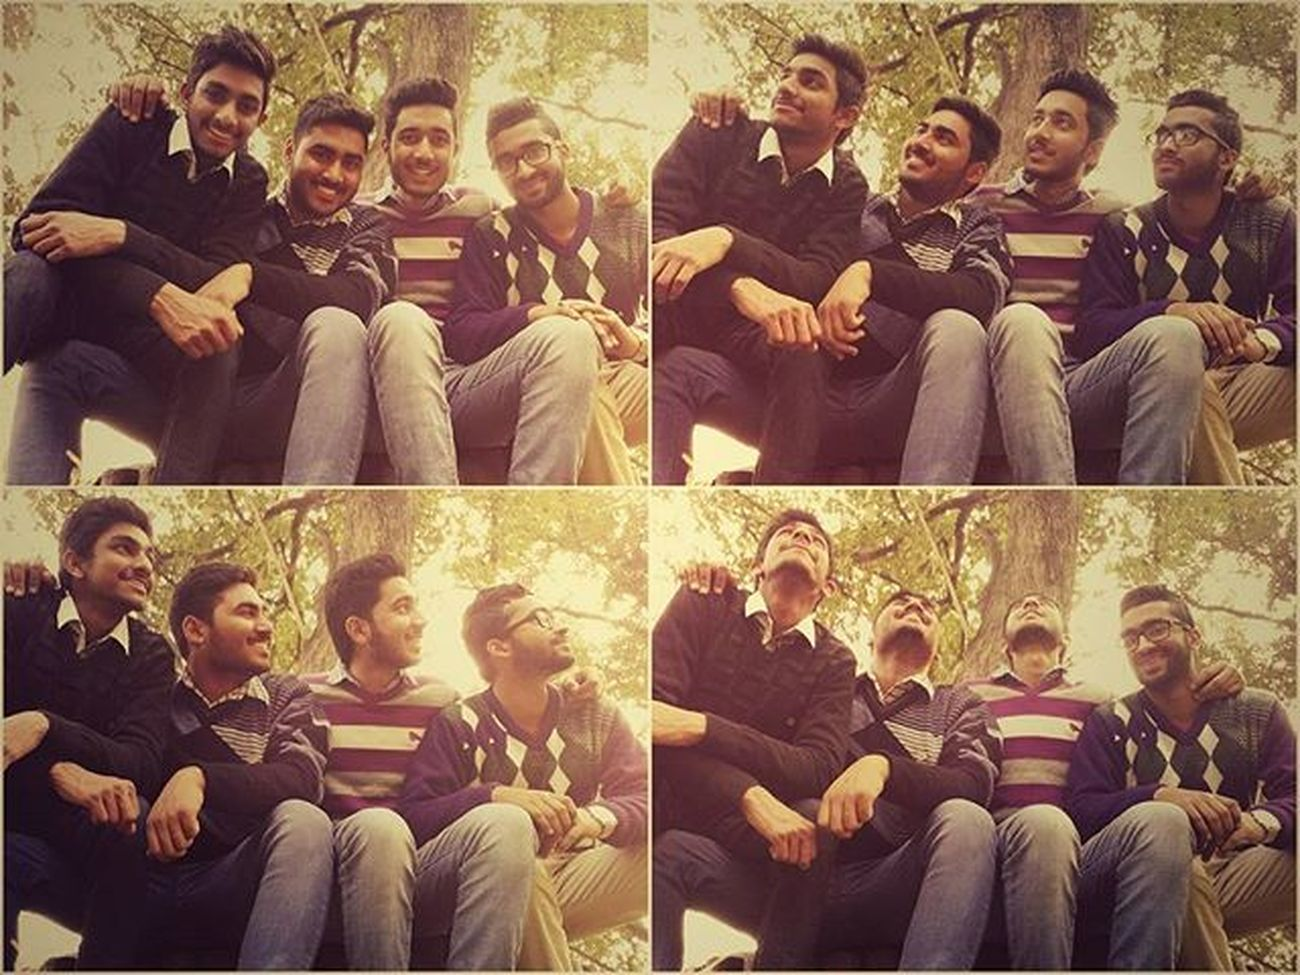 The Greatest Gift of Life is Friendship , and I Have Received it. Random Clicks by Timer Become d best Memory of our Chhatbirr Visit : Hahaha! These guys know what I mean....😊👌🙌😱😱😱😱😱